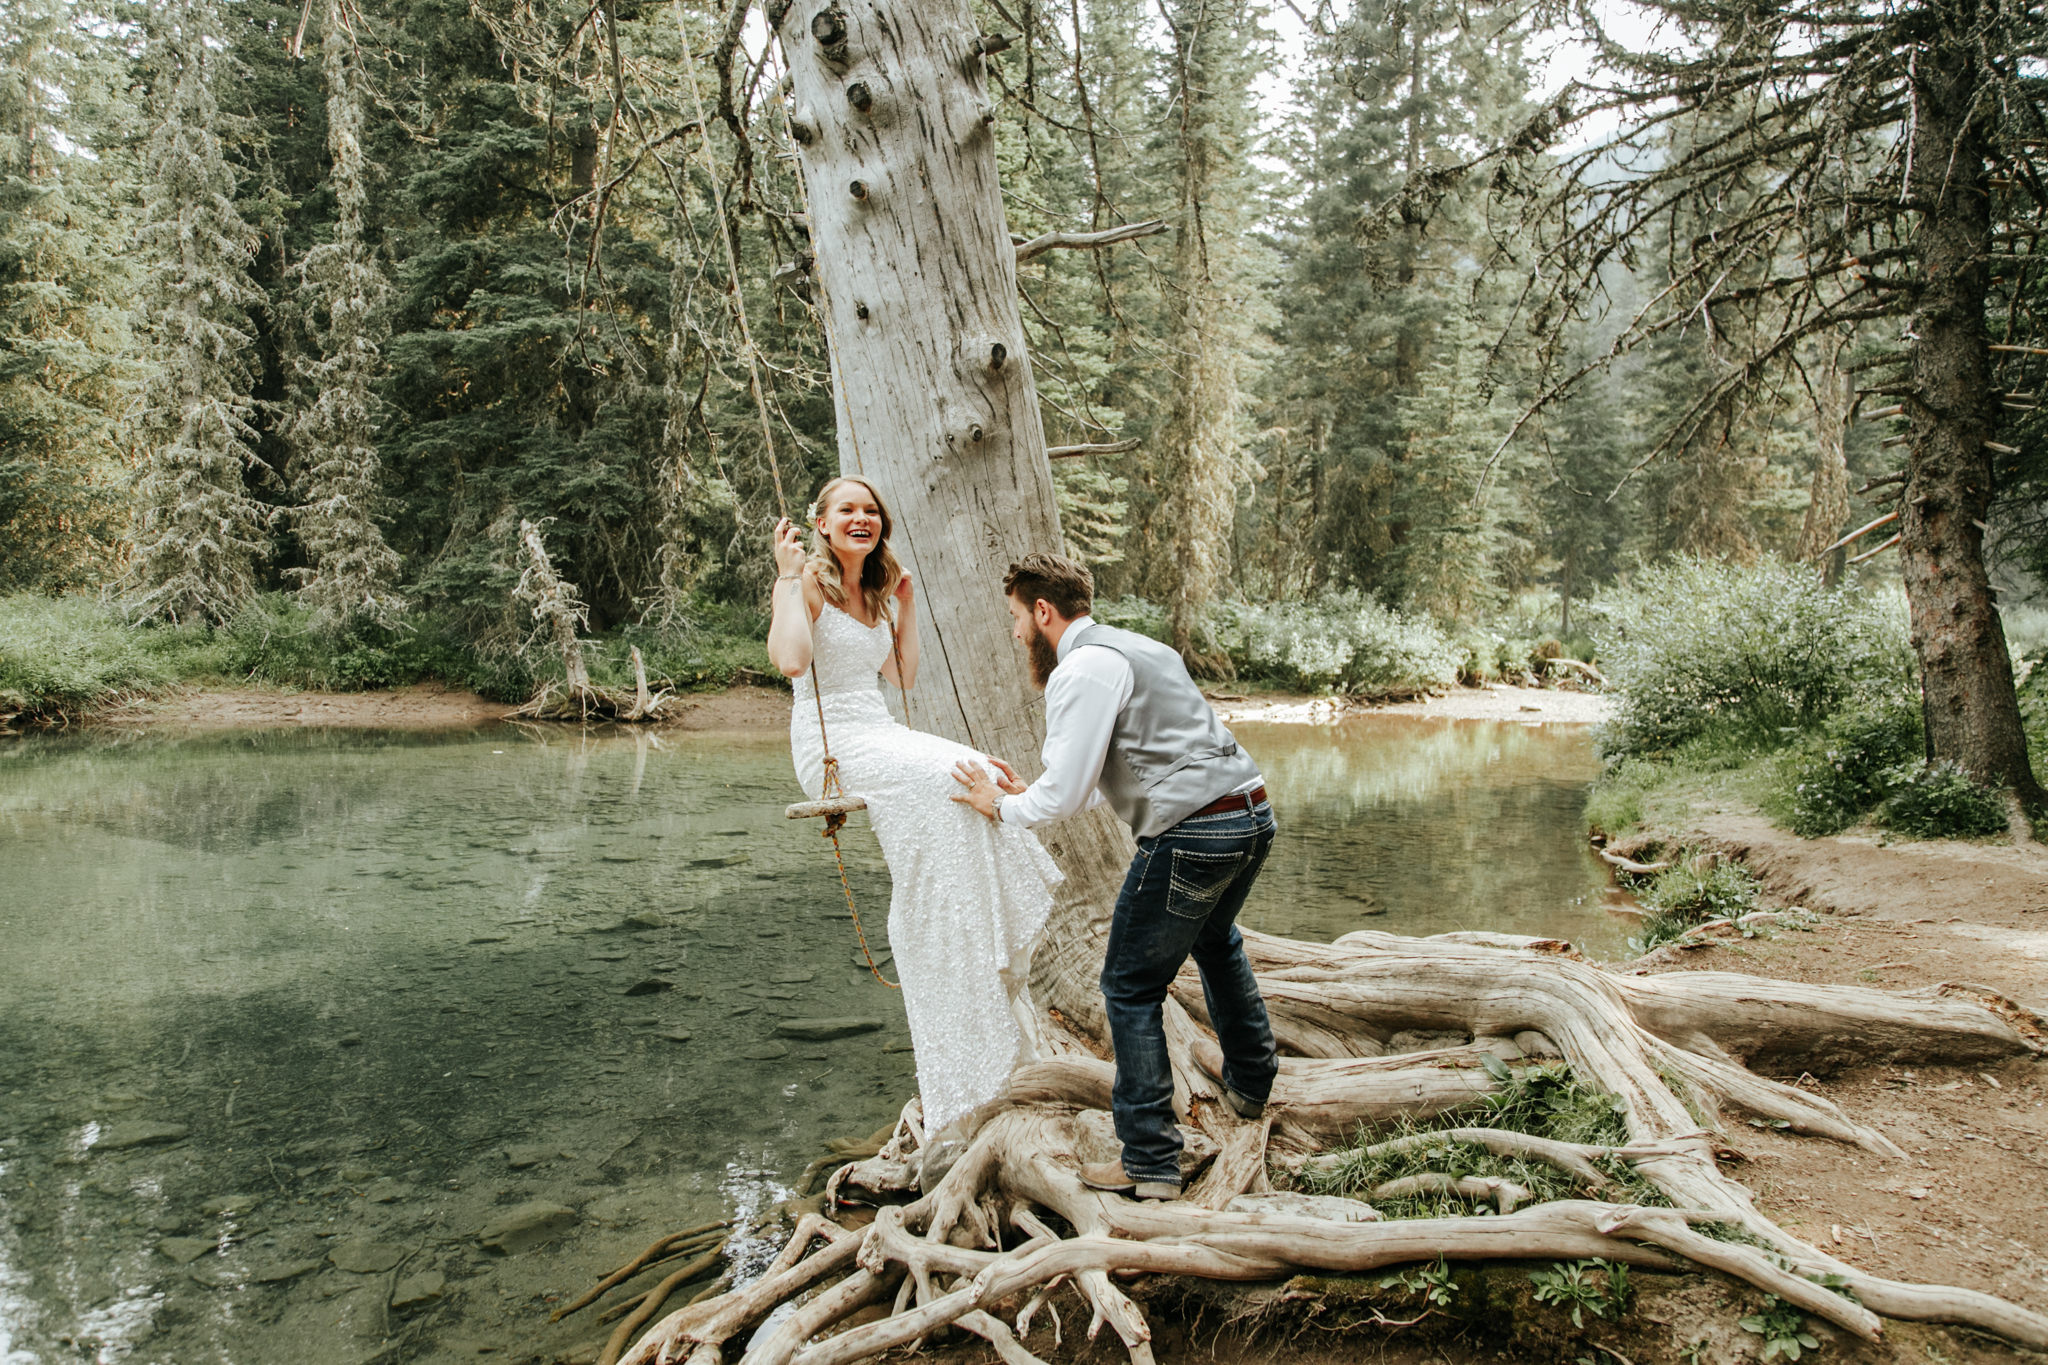 castle-mountain-wedding-photographer-love-and-be-loved-photography-lethbridge-pincher-creek-crowsnest-pass-yannick-rylee-photo-image-picture-155160.jpg